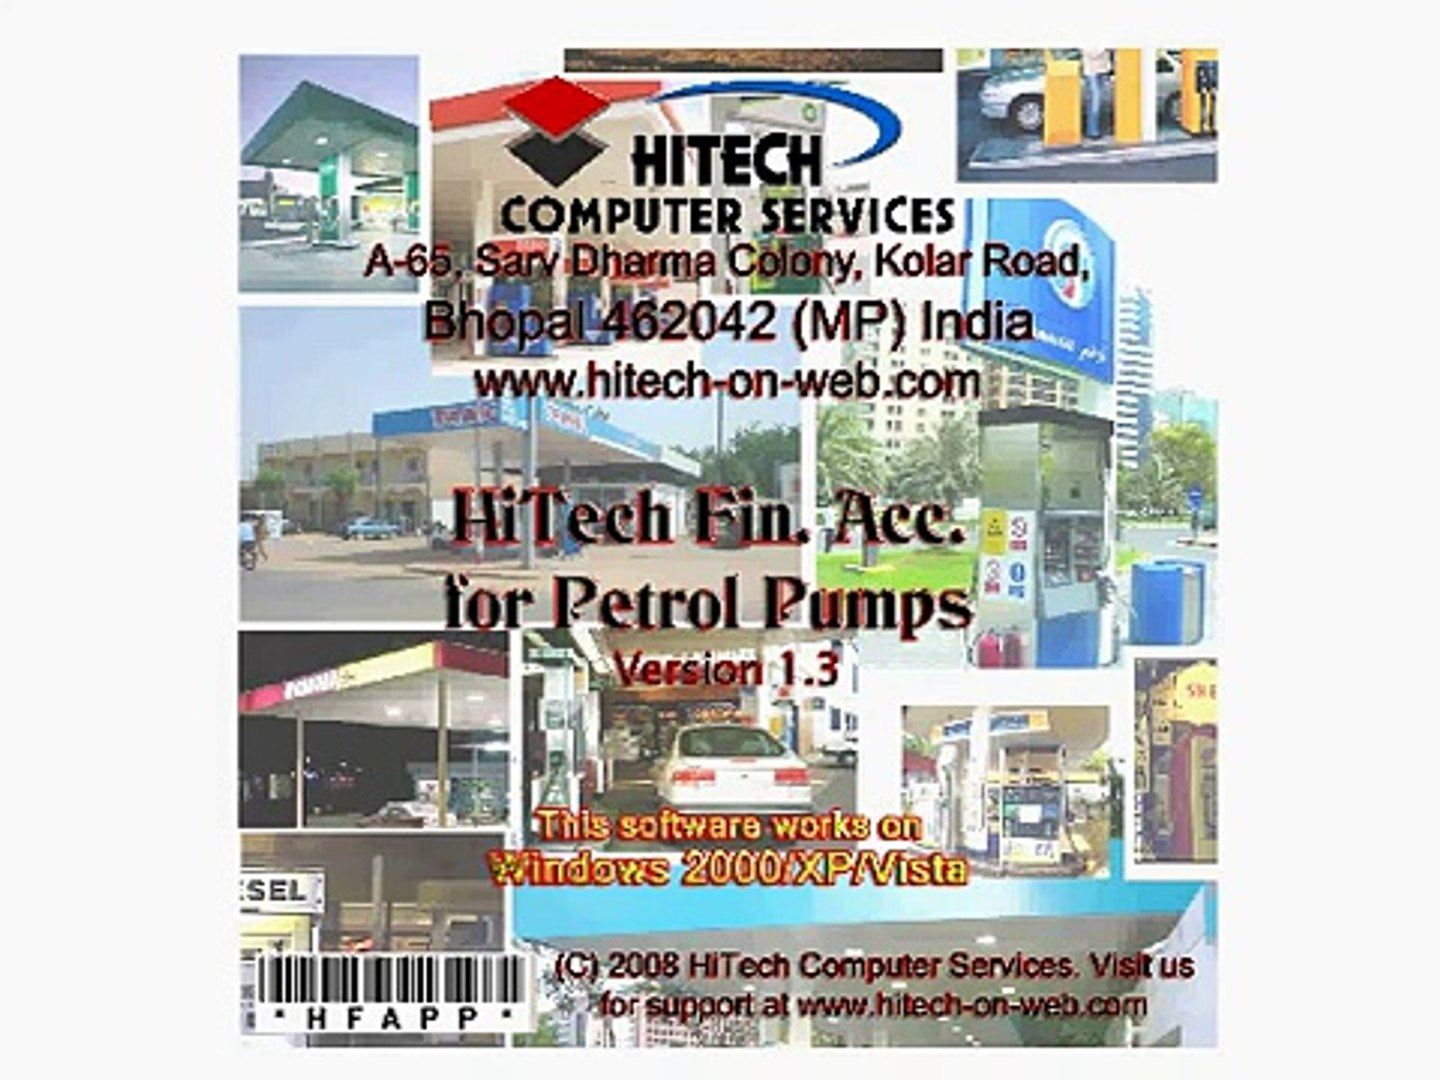 Accounting Software, Inventory Control Software, Billing Software from HiTech